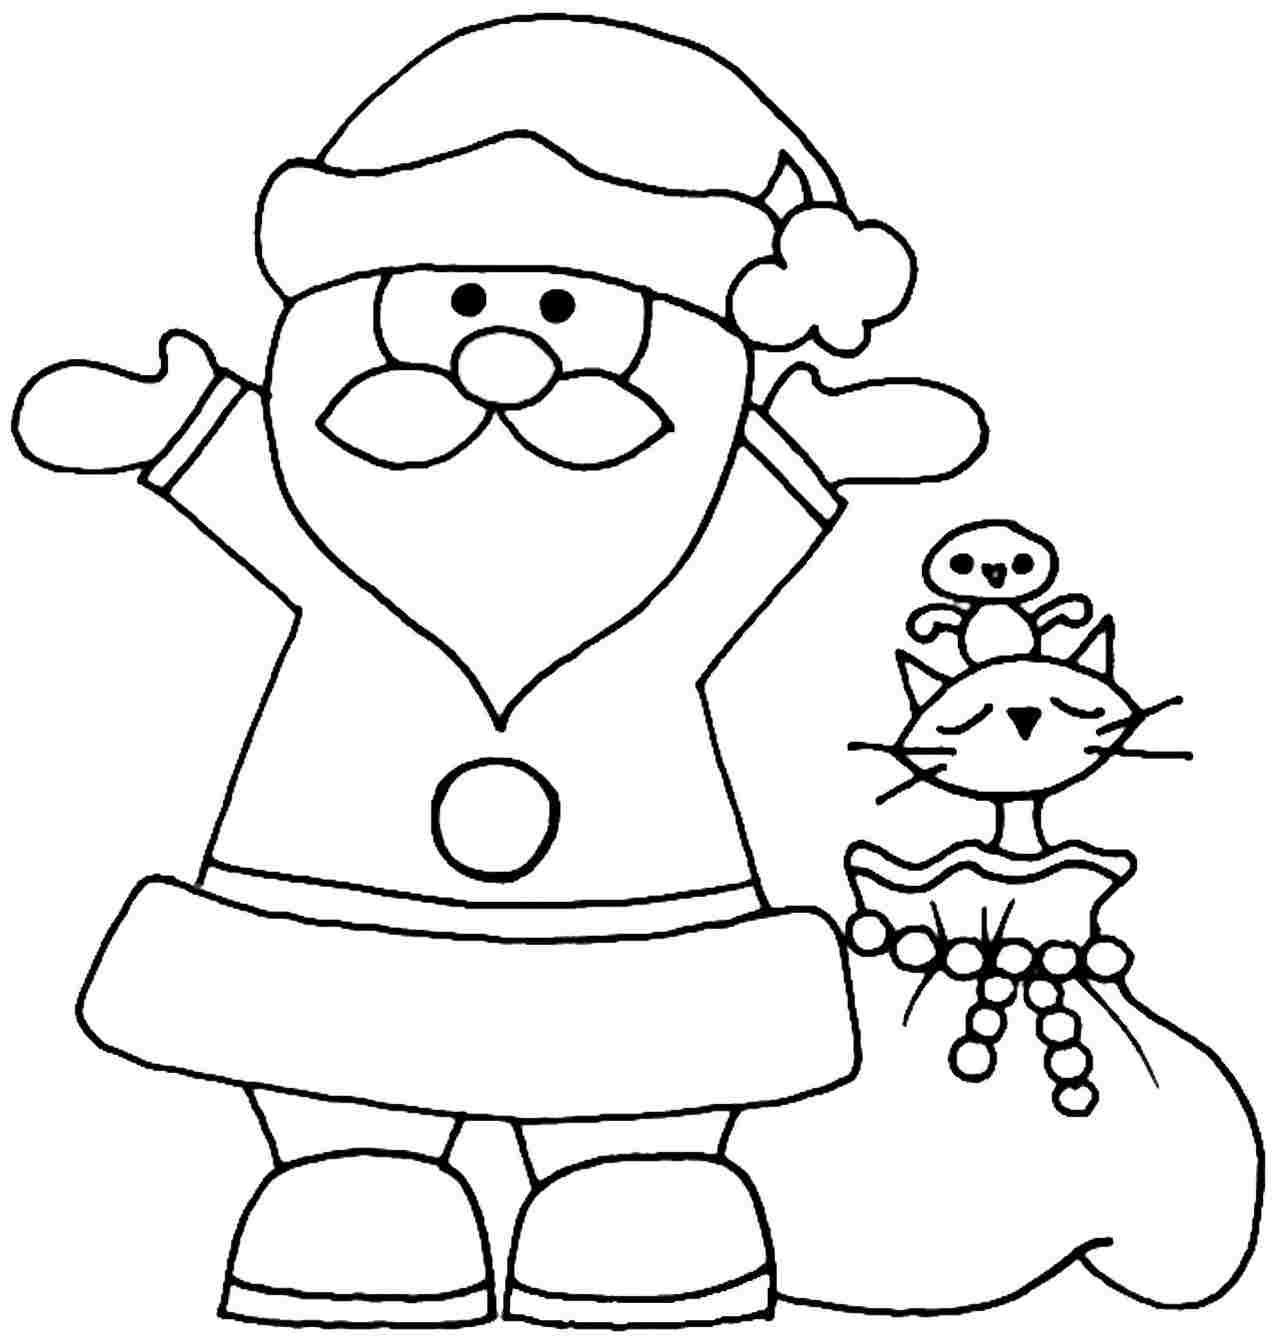 Kids Christmas Santa Claus Coloring Page With Pin By Shreya Thakur On Free Pages Pinterest